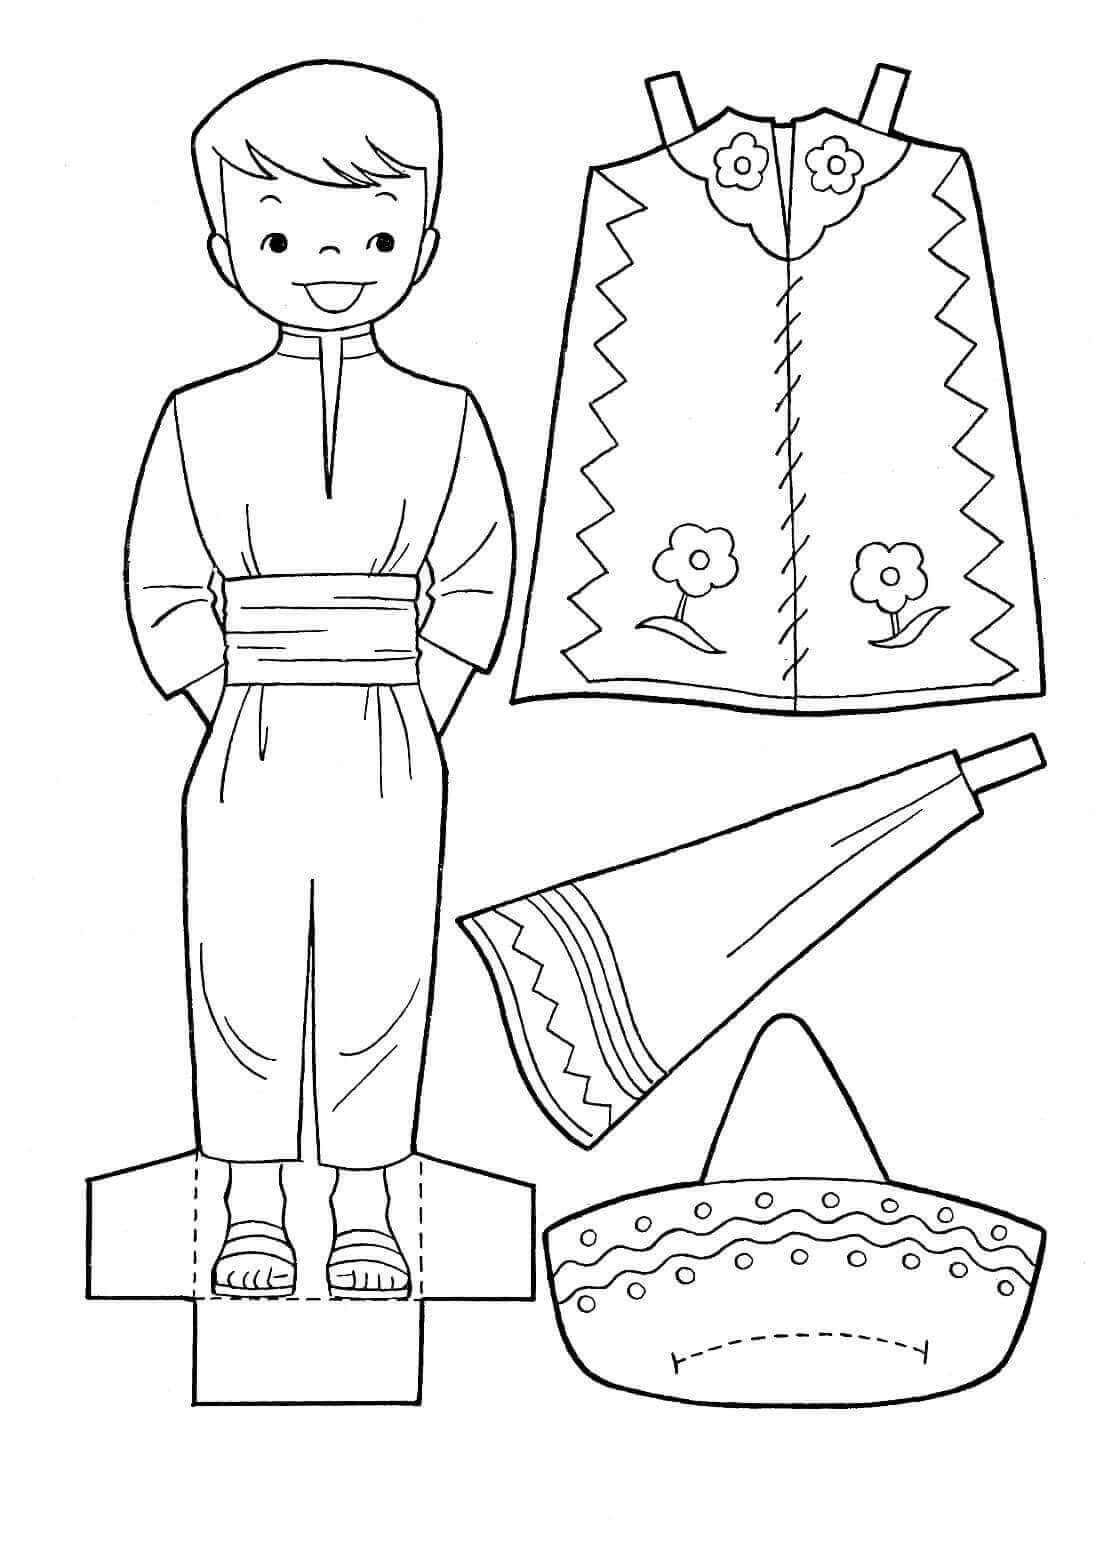 Cinco De Mayo Activity Sheets For Kids Printable Paper Dolls